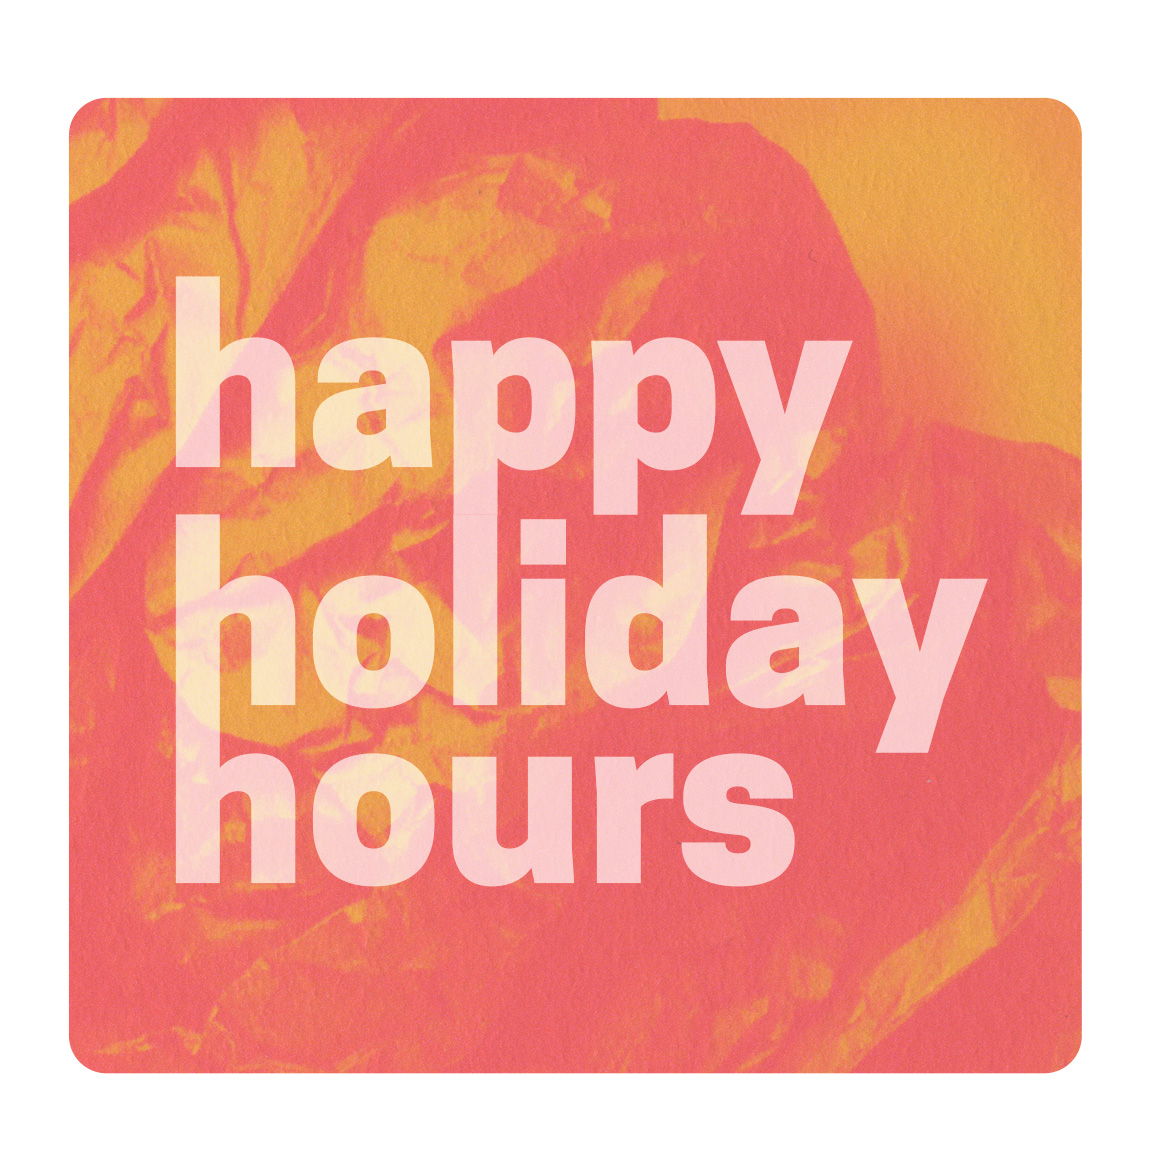 Holiday Hours - December 24th: 9am - 2pmDecember 25th: CLOSEDDecember 31st: 9am - 2pmJanuary 1st: 9am - 11pm